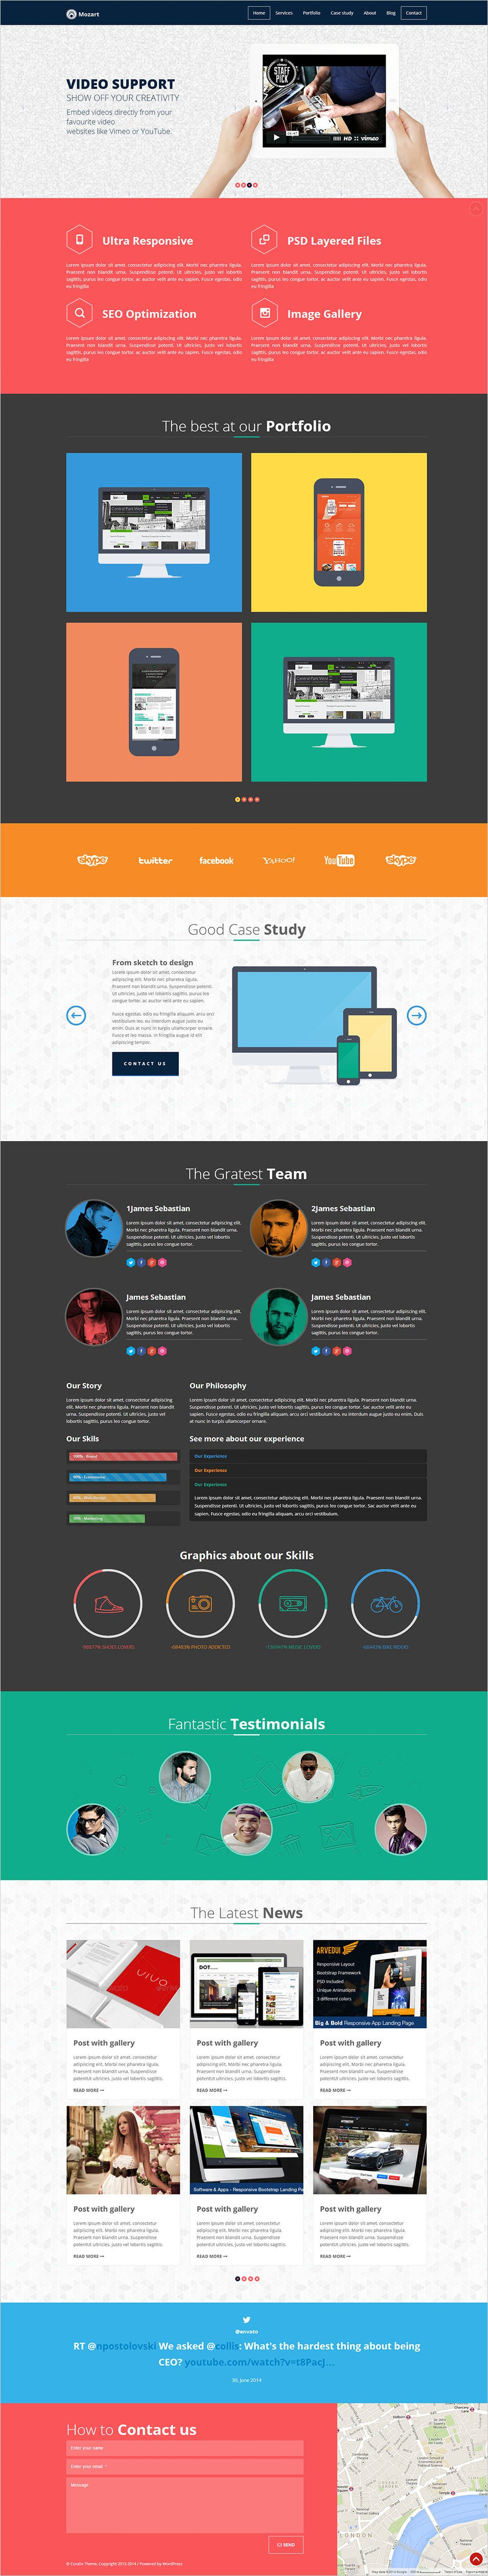 17+ Best Flat Design Website Templates | Free & Premium ...